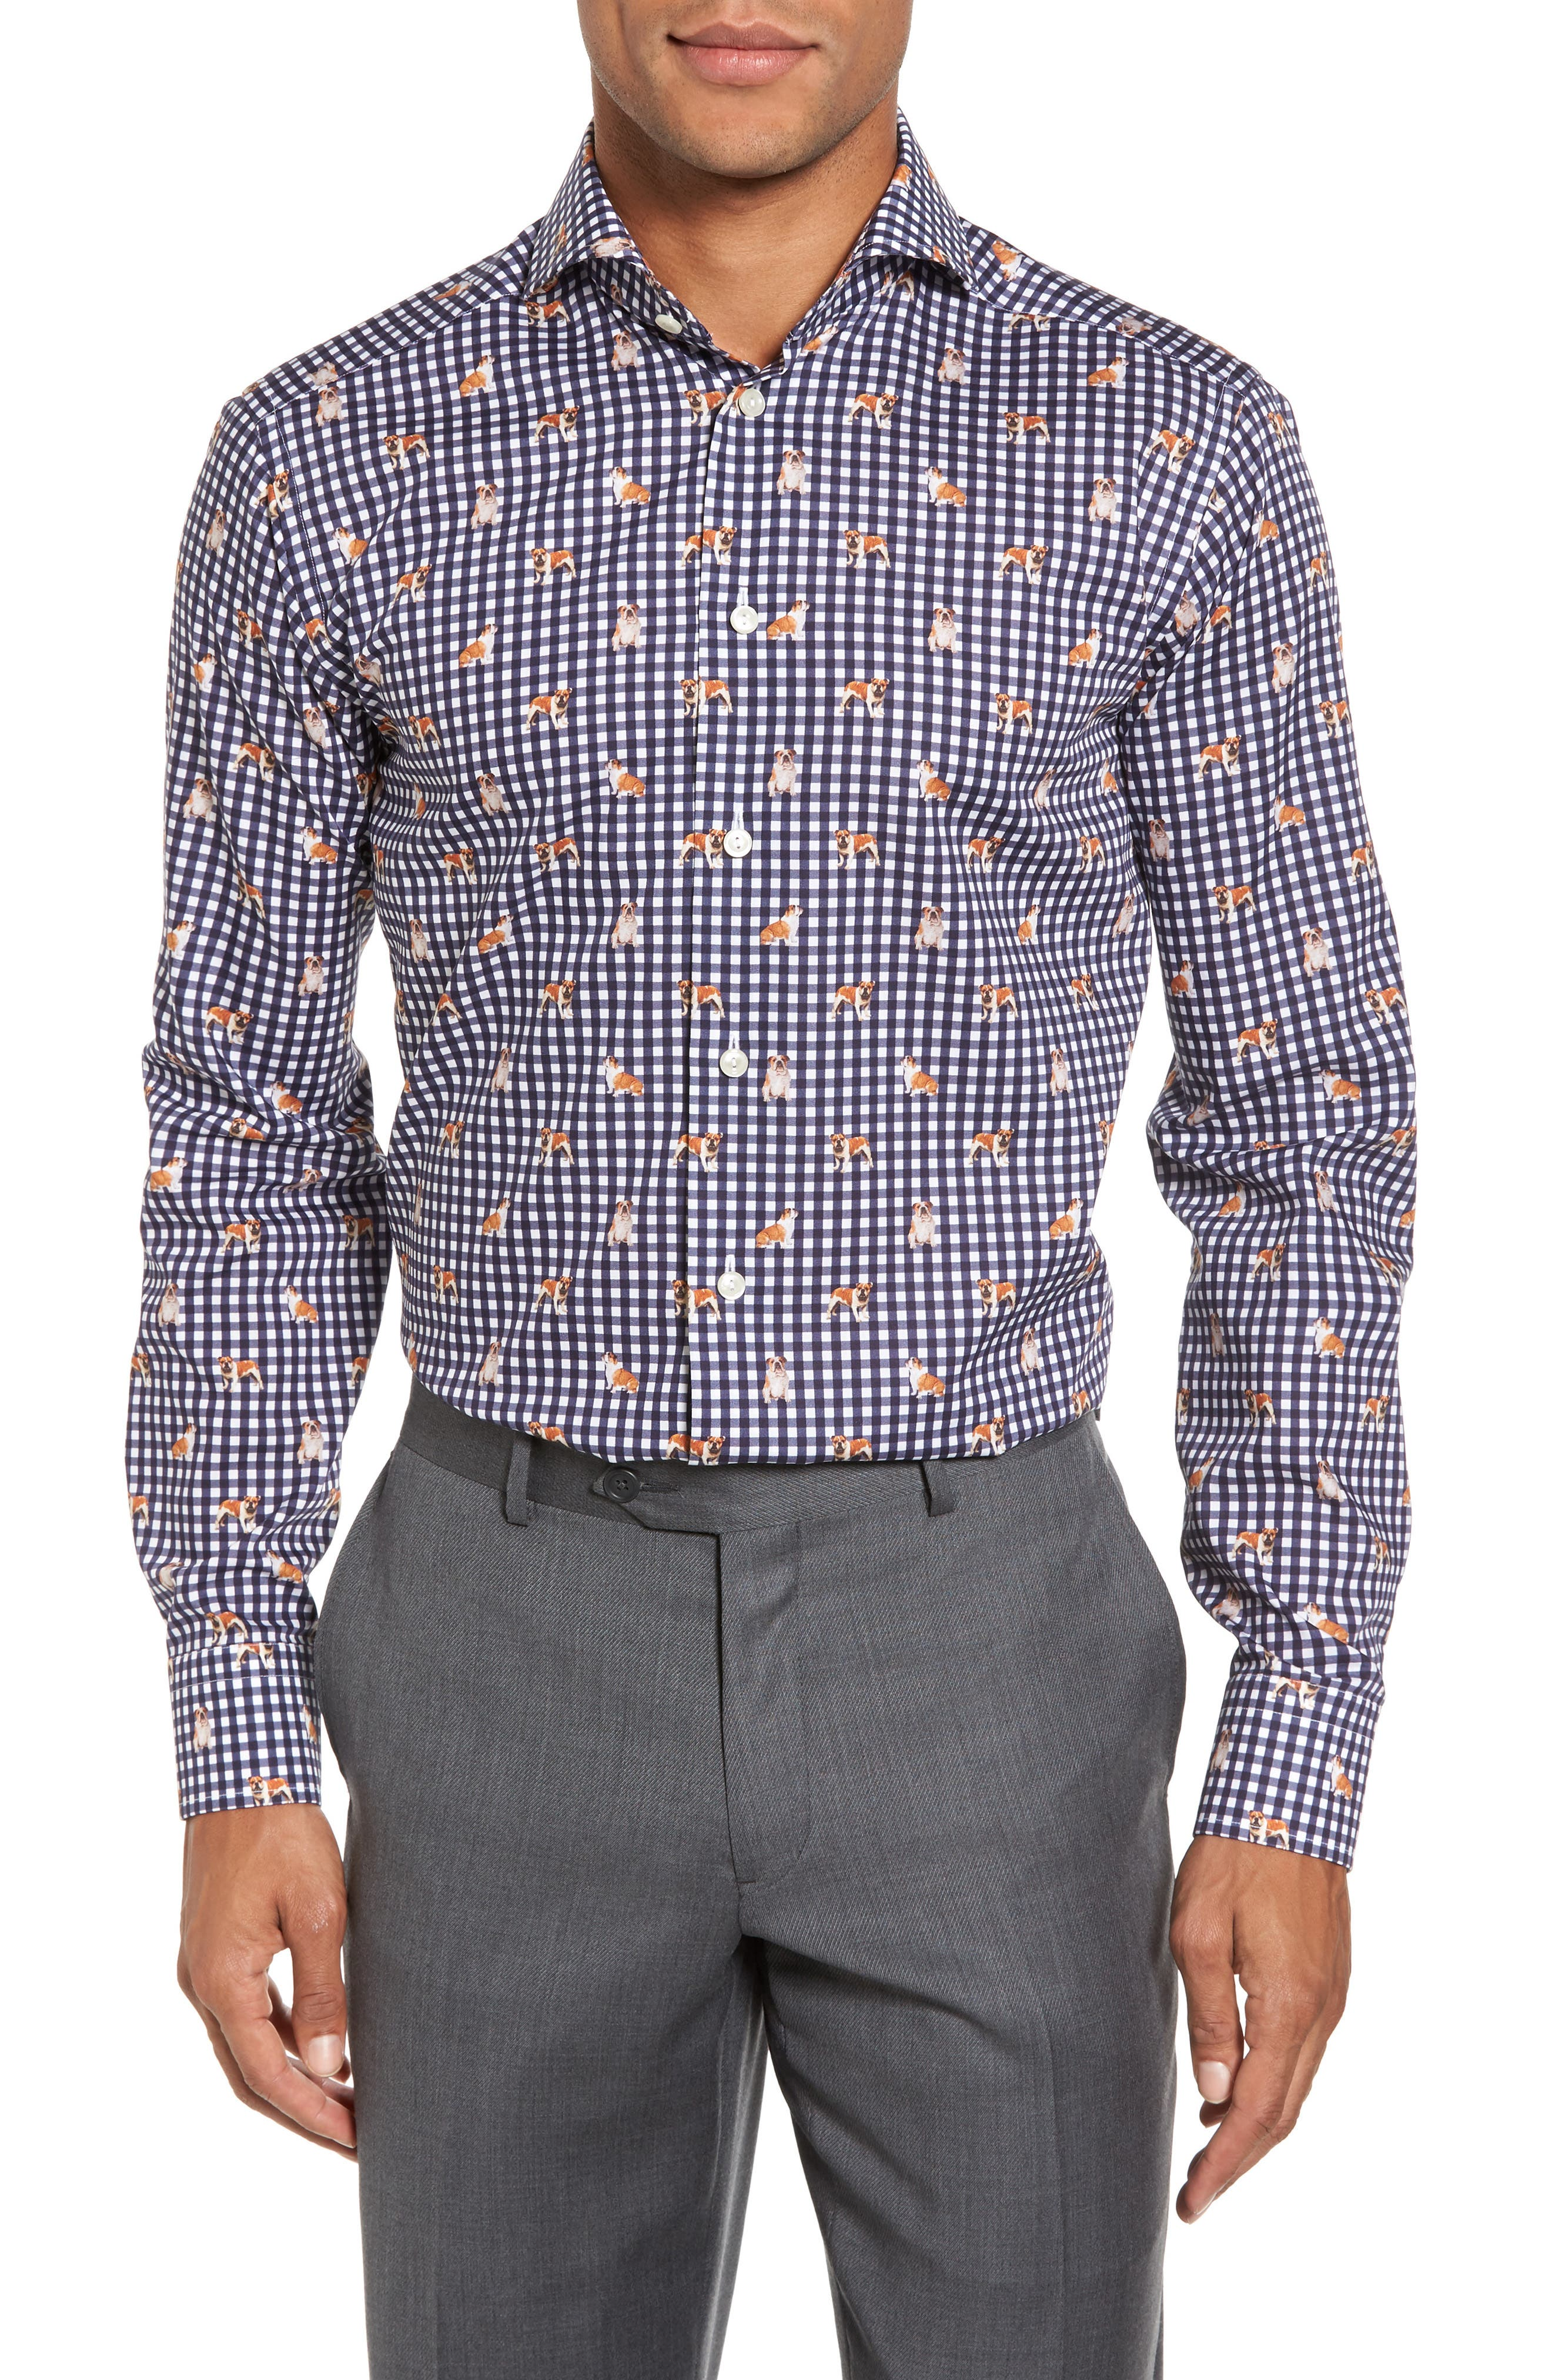 Alternate Image 2  - Eton Slim Fit Print Dress Shirt